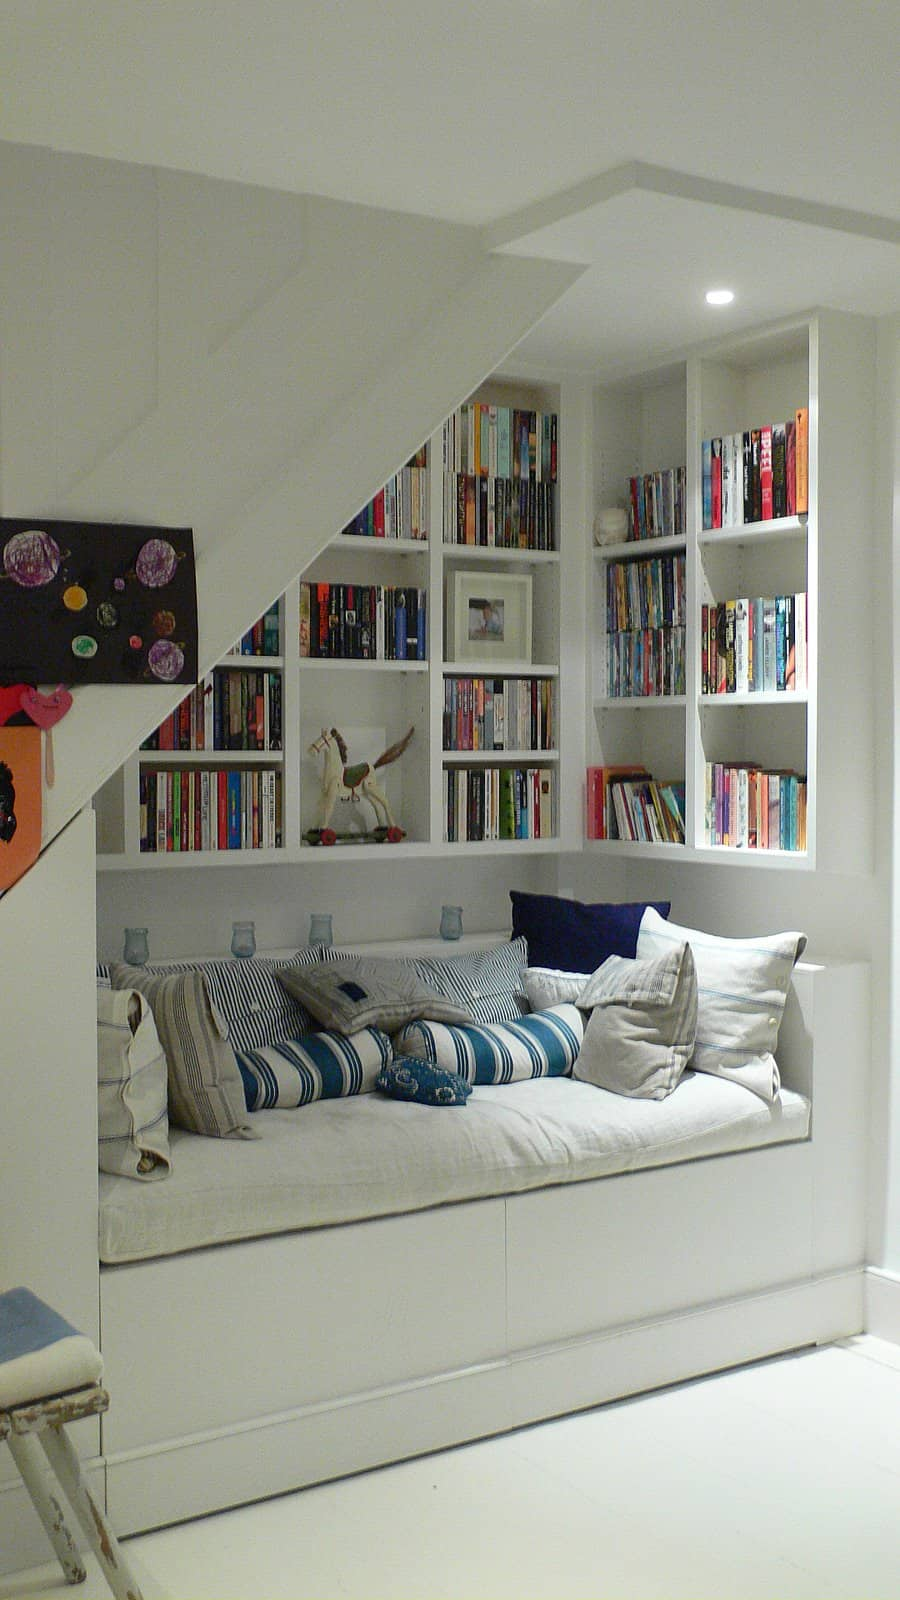 Library Room Ideas For Small Spaces: 20 Marvelous Home Libraries That Every Book Worm Is Going